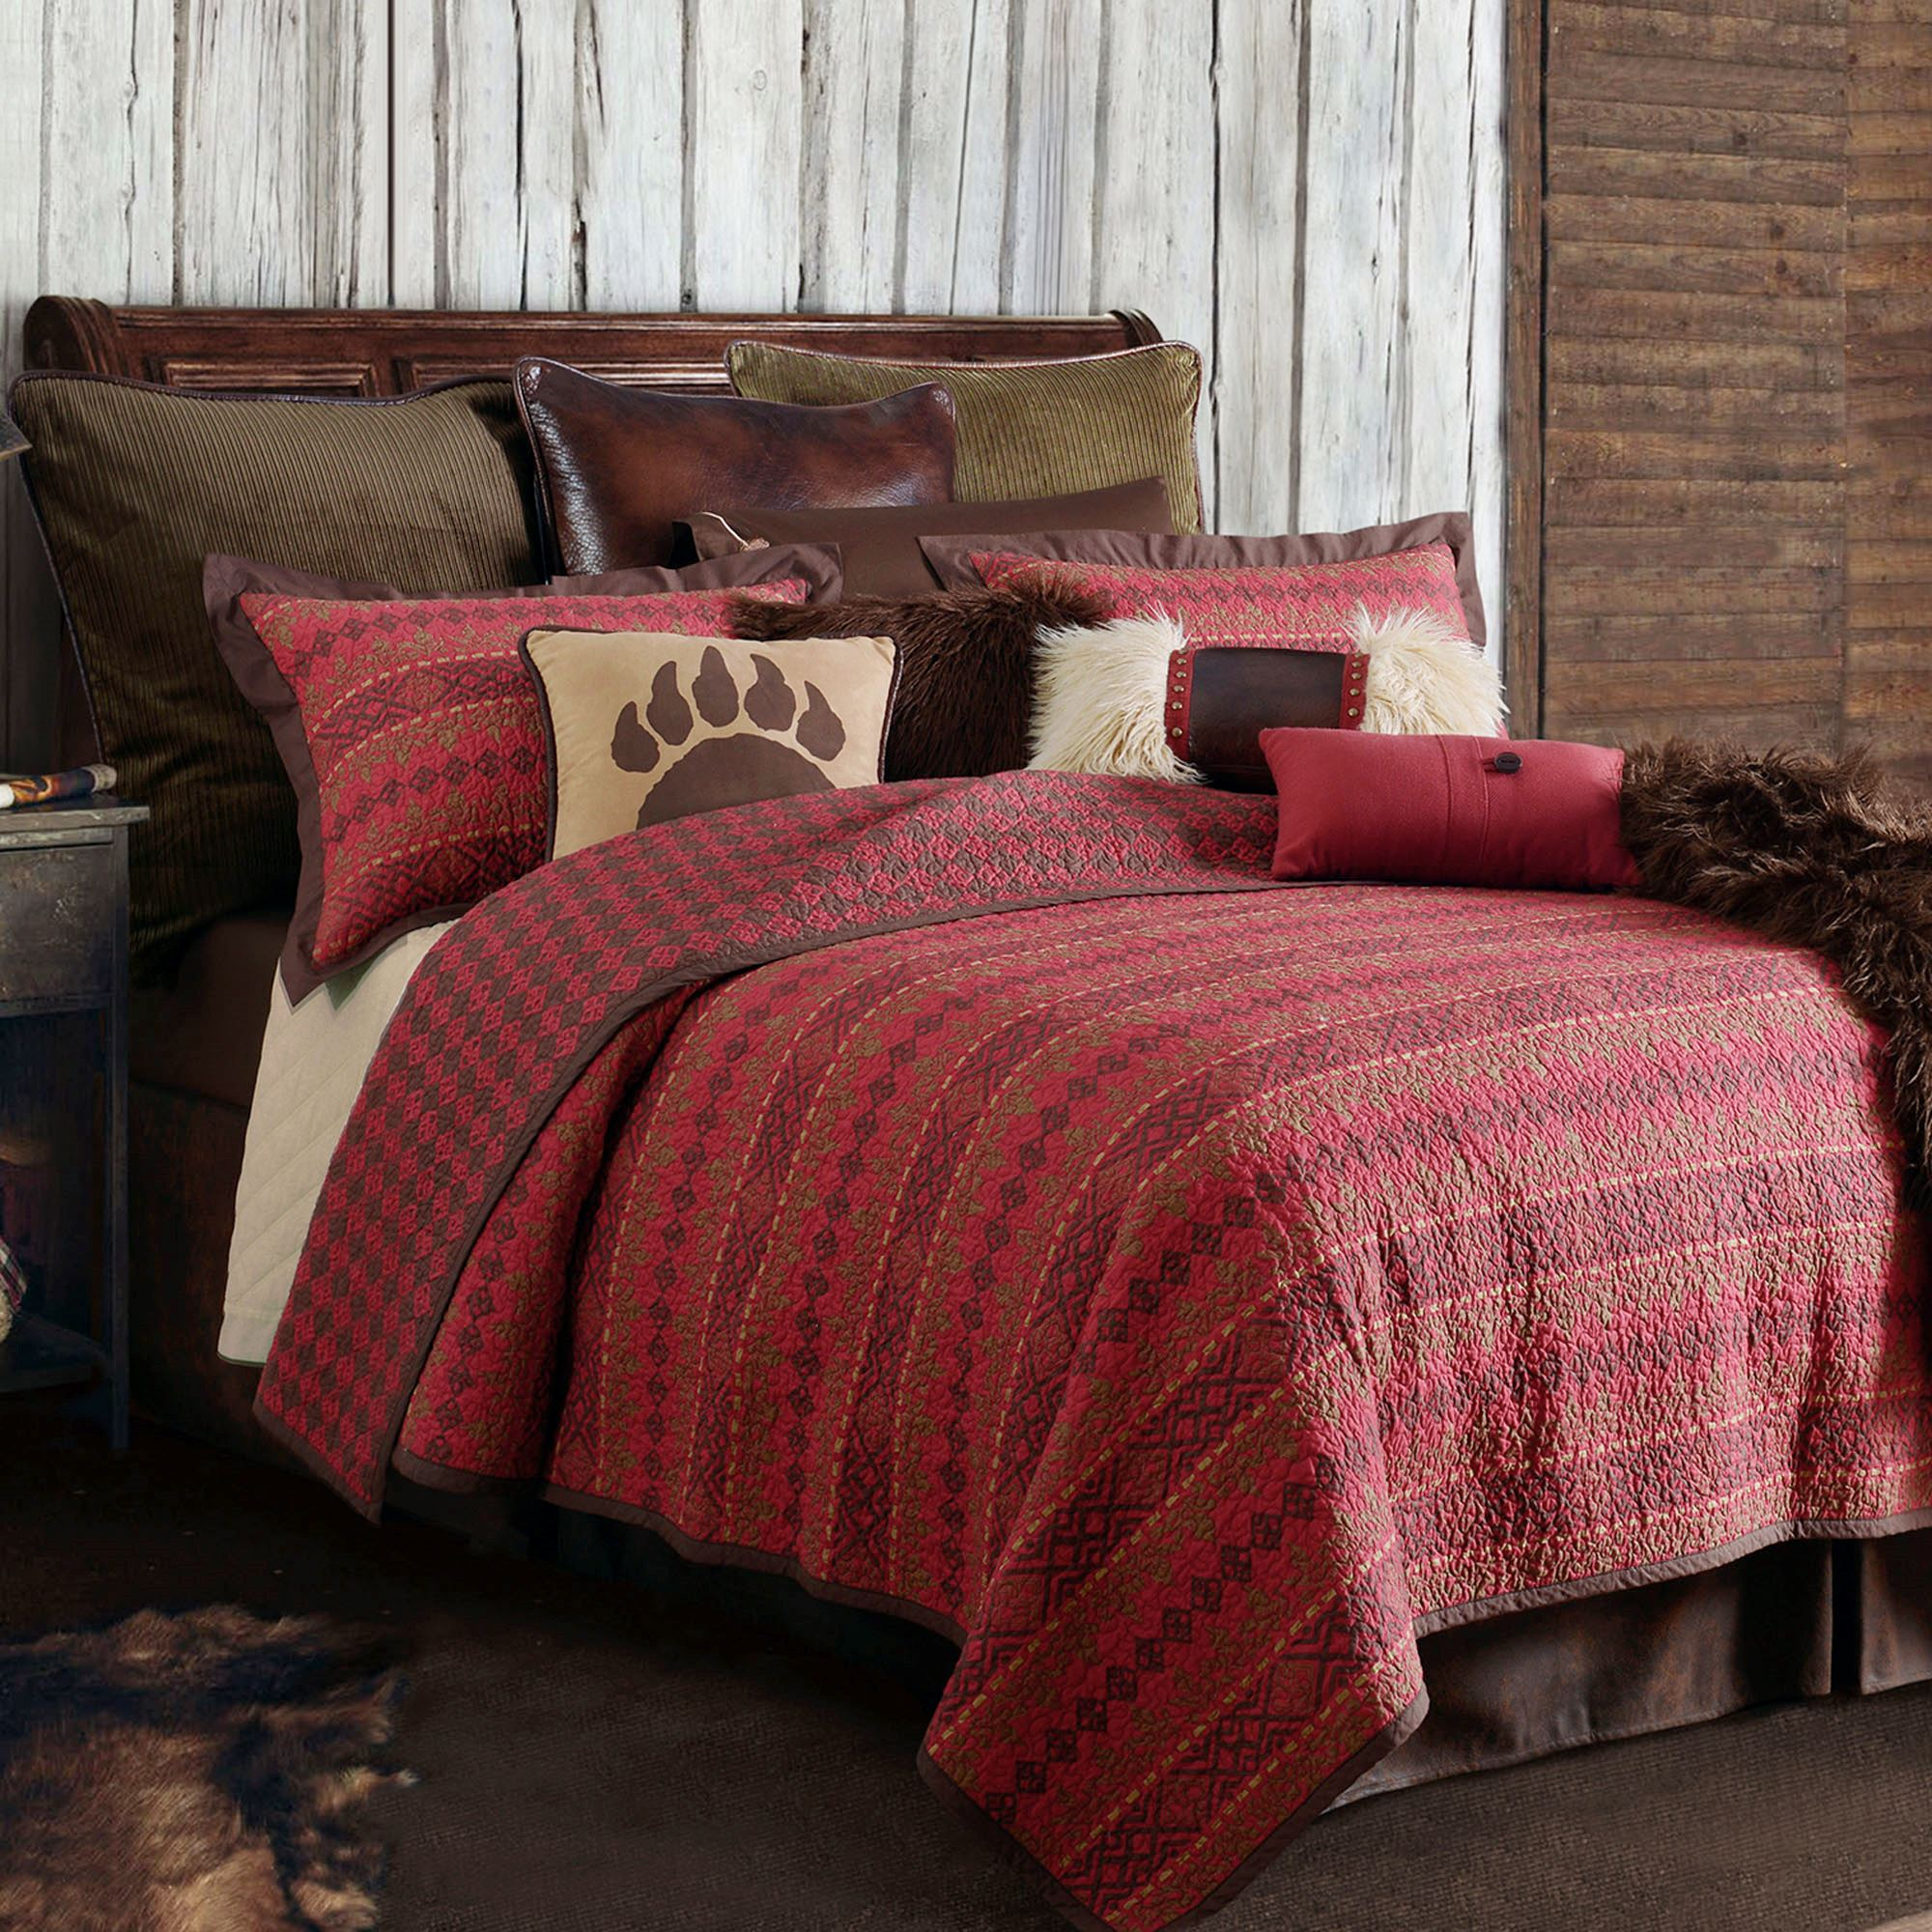 bedding p by wagner comforter duvet chocolate set rustic covers croscill plaid